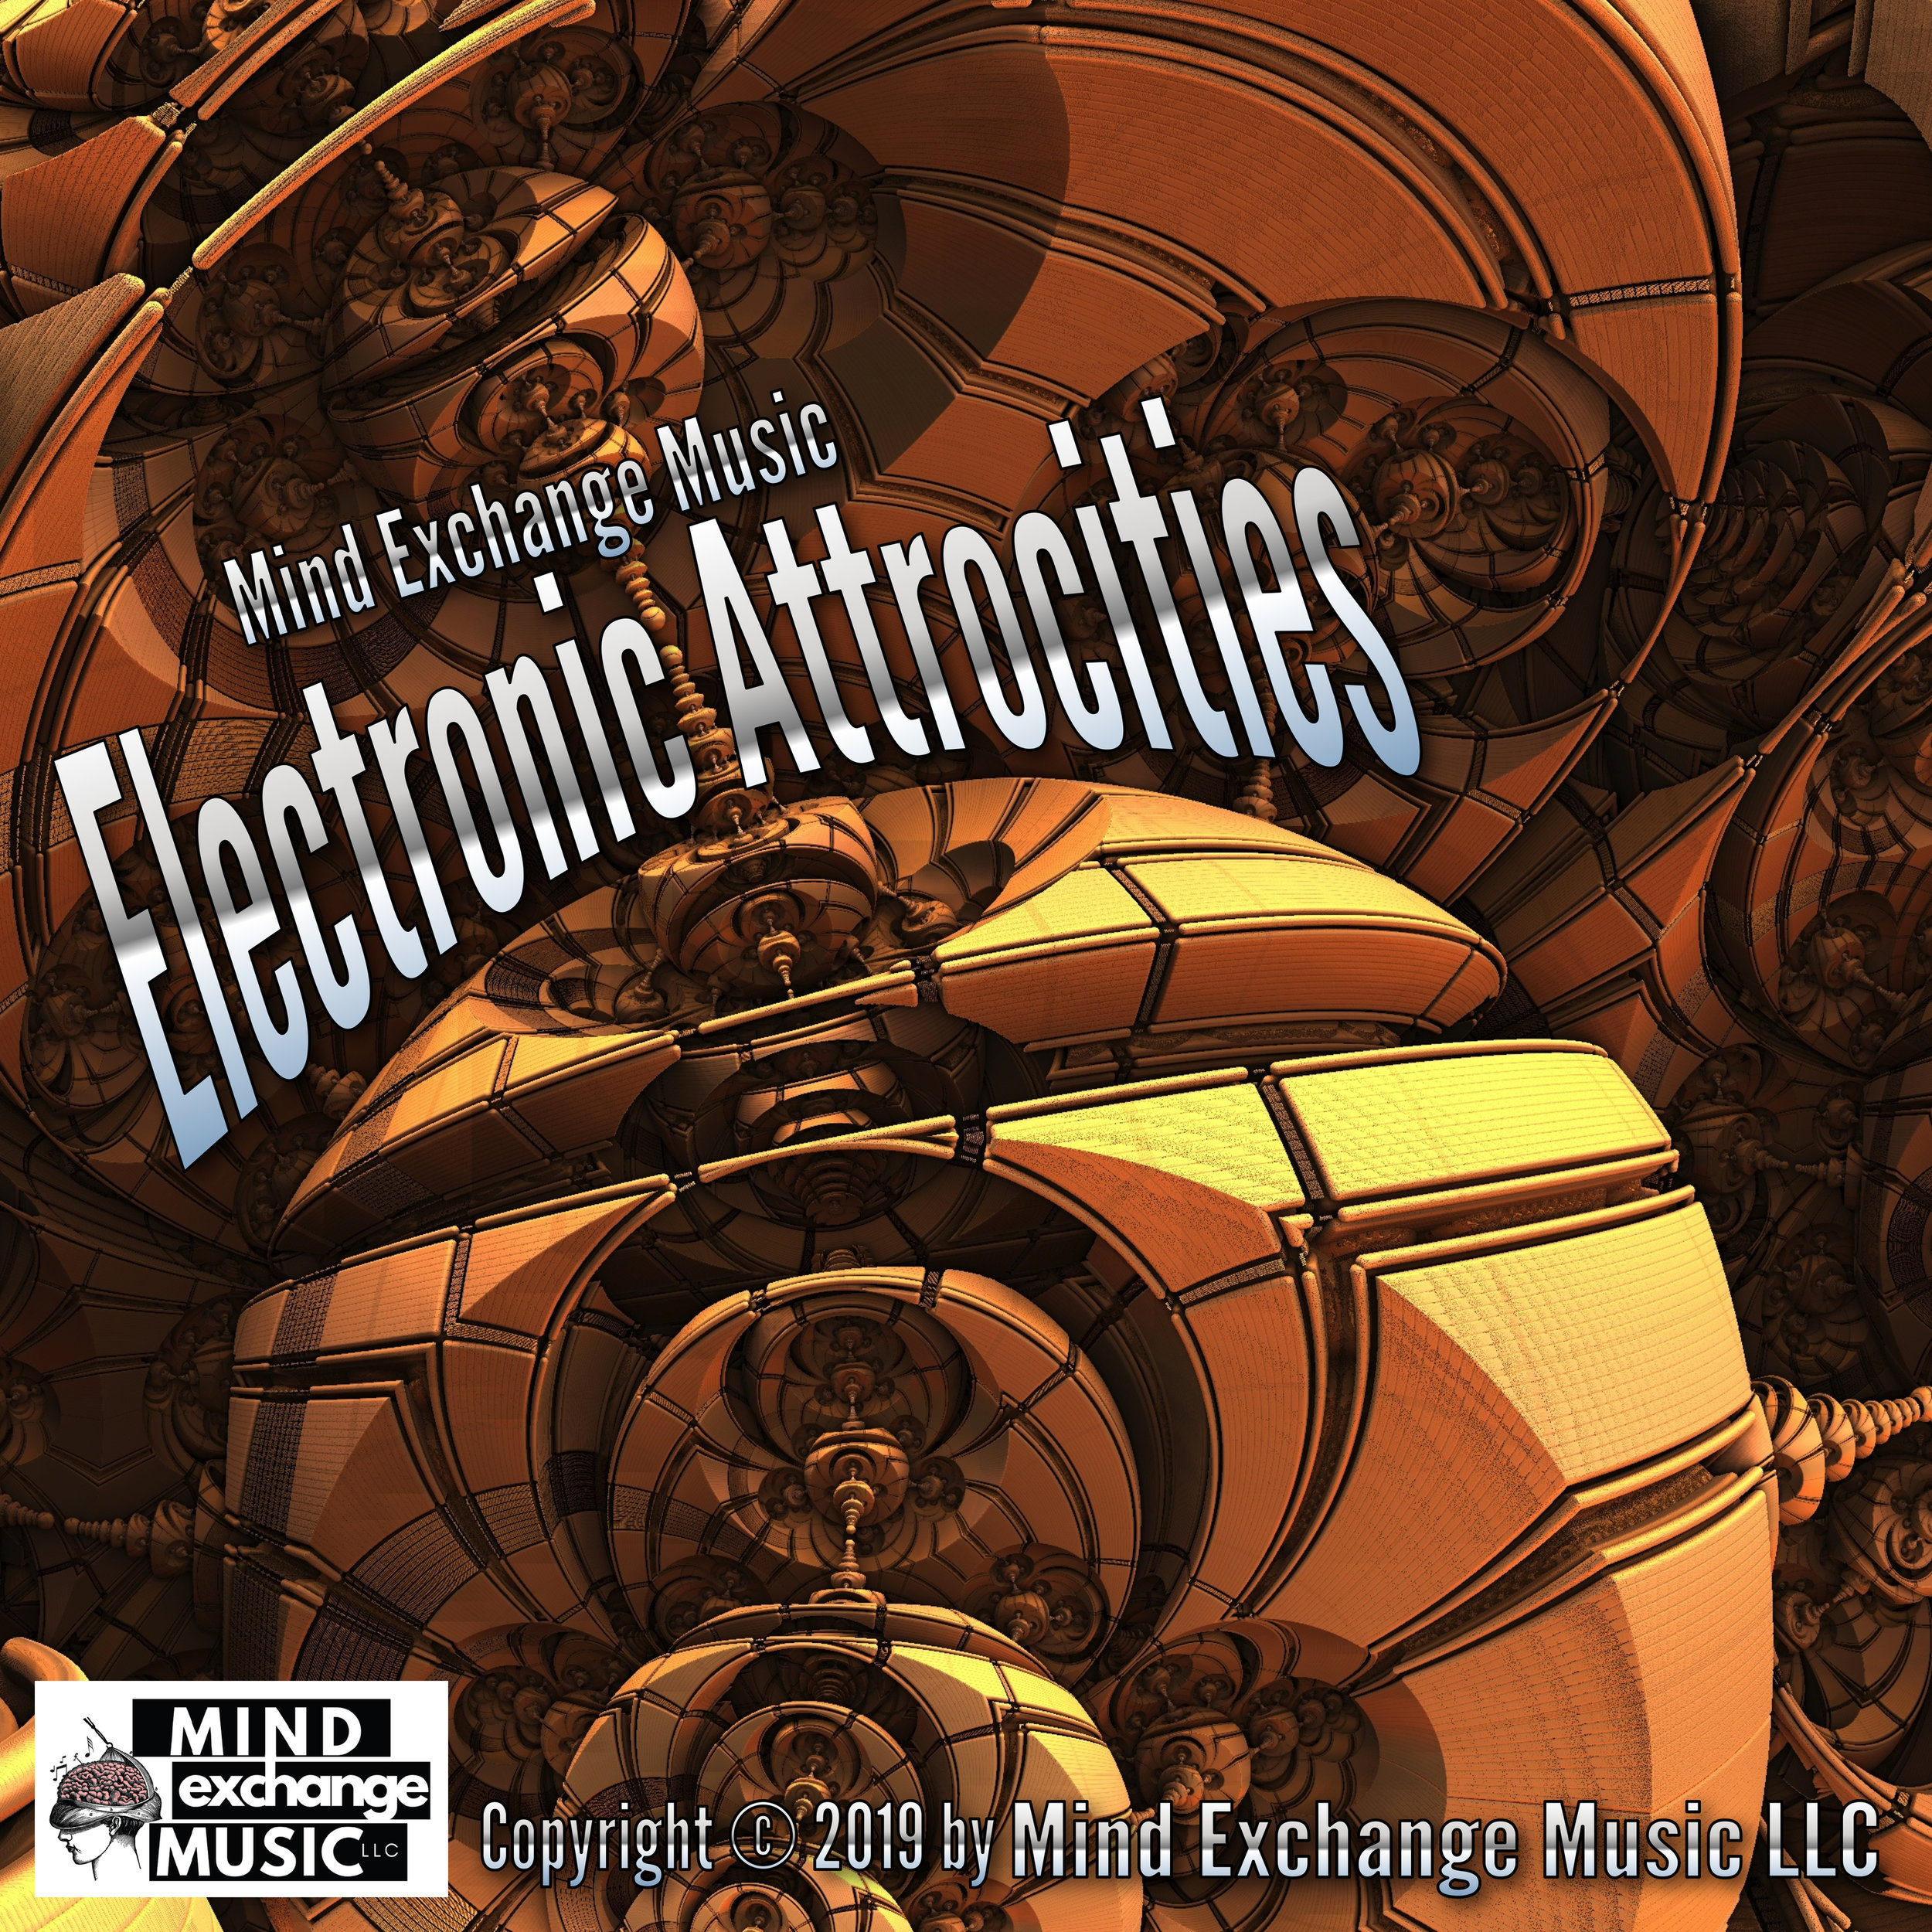 Mind Exchange Music's Record Cover Electronic Atrrocities